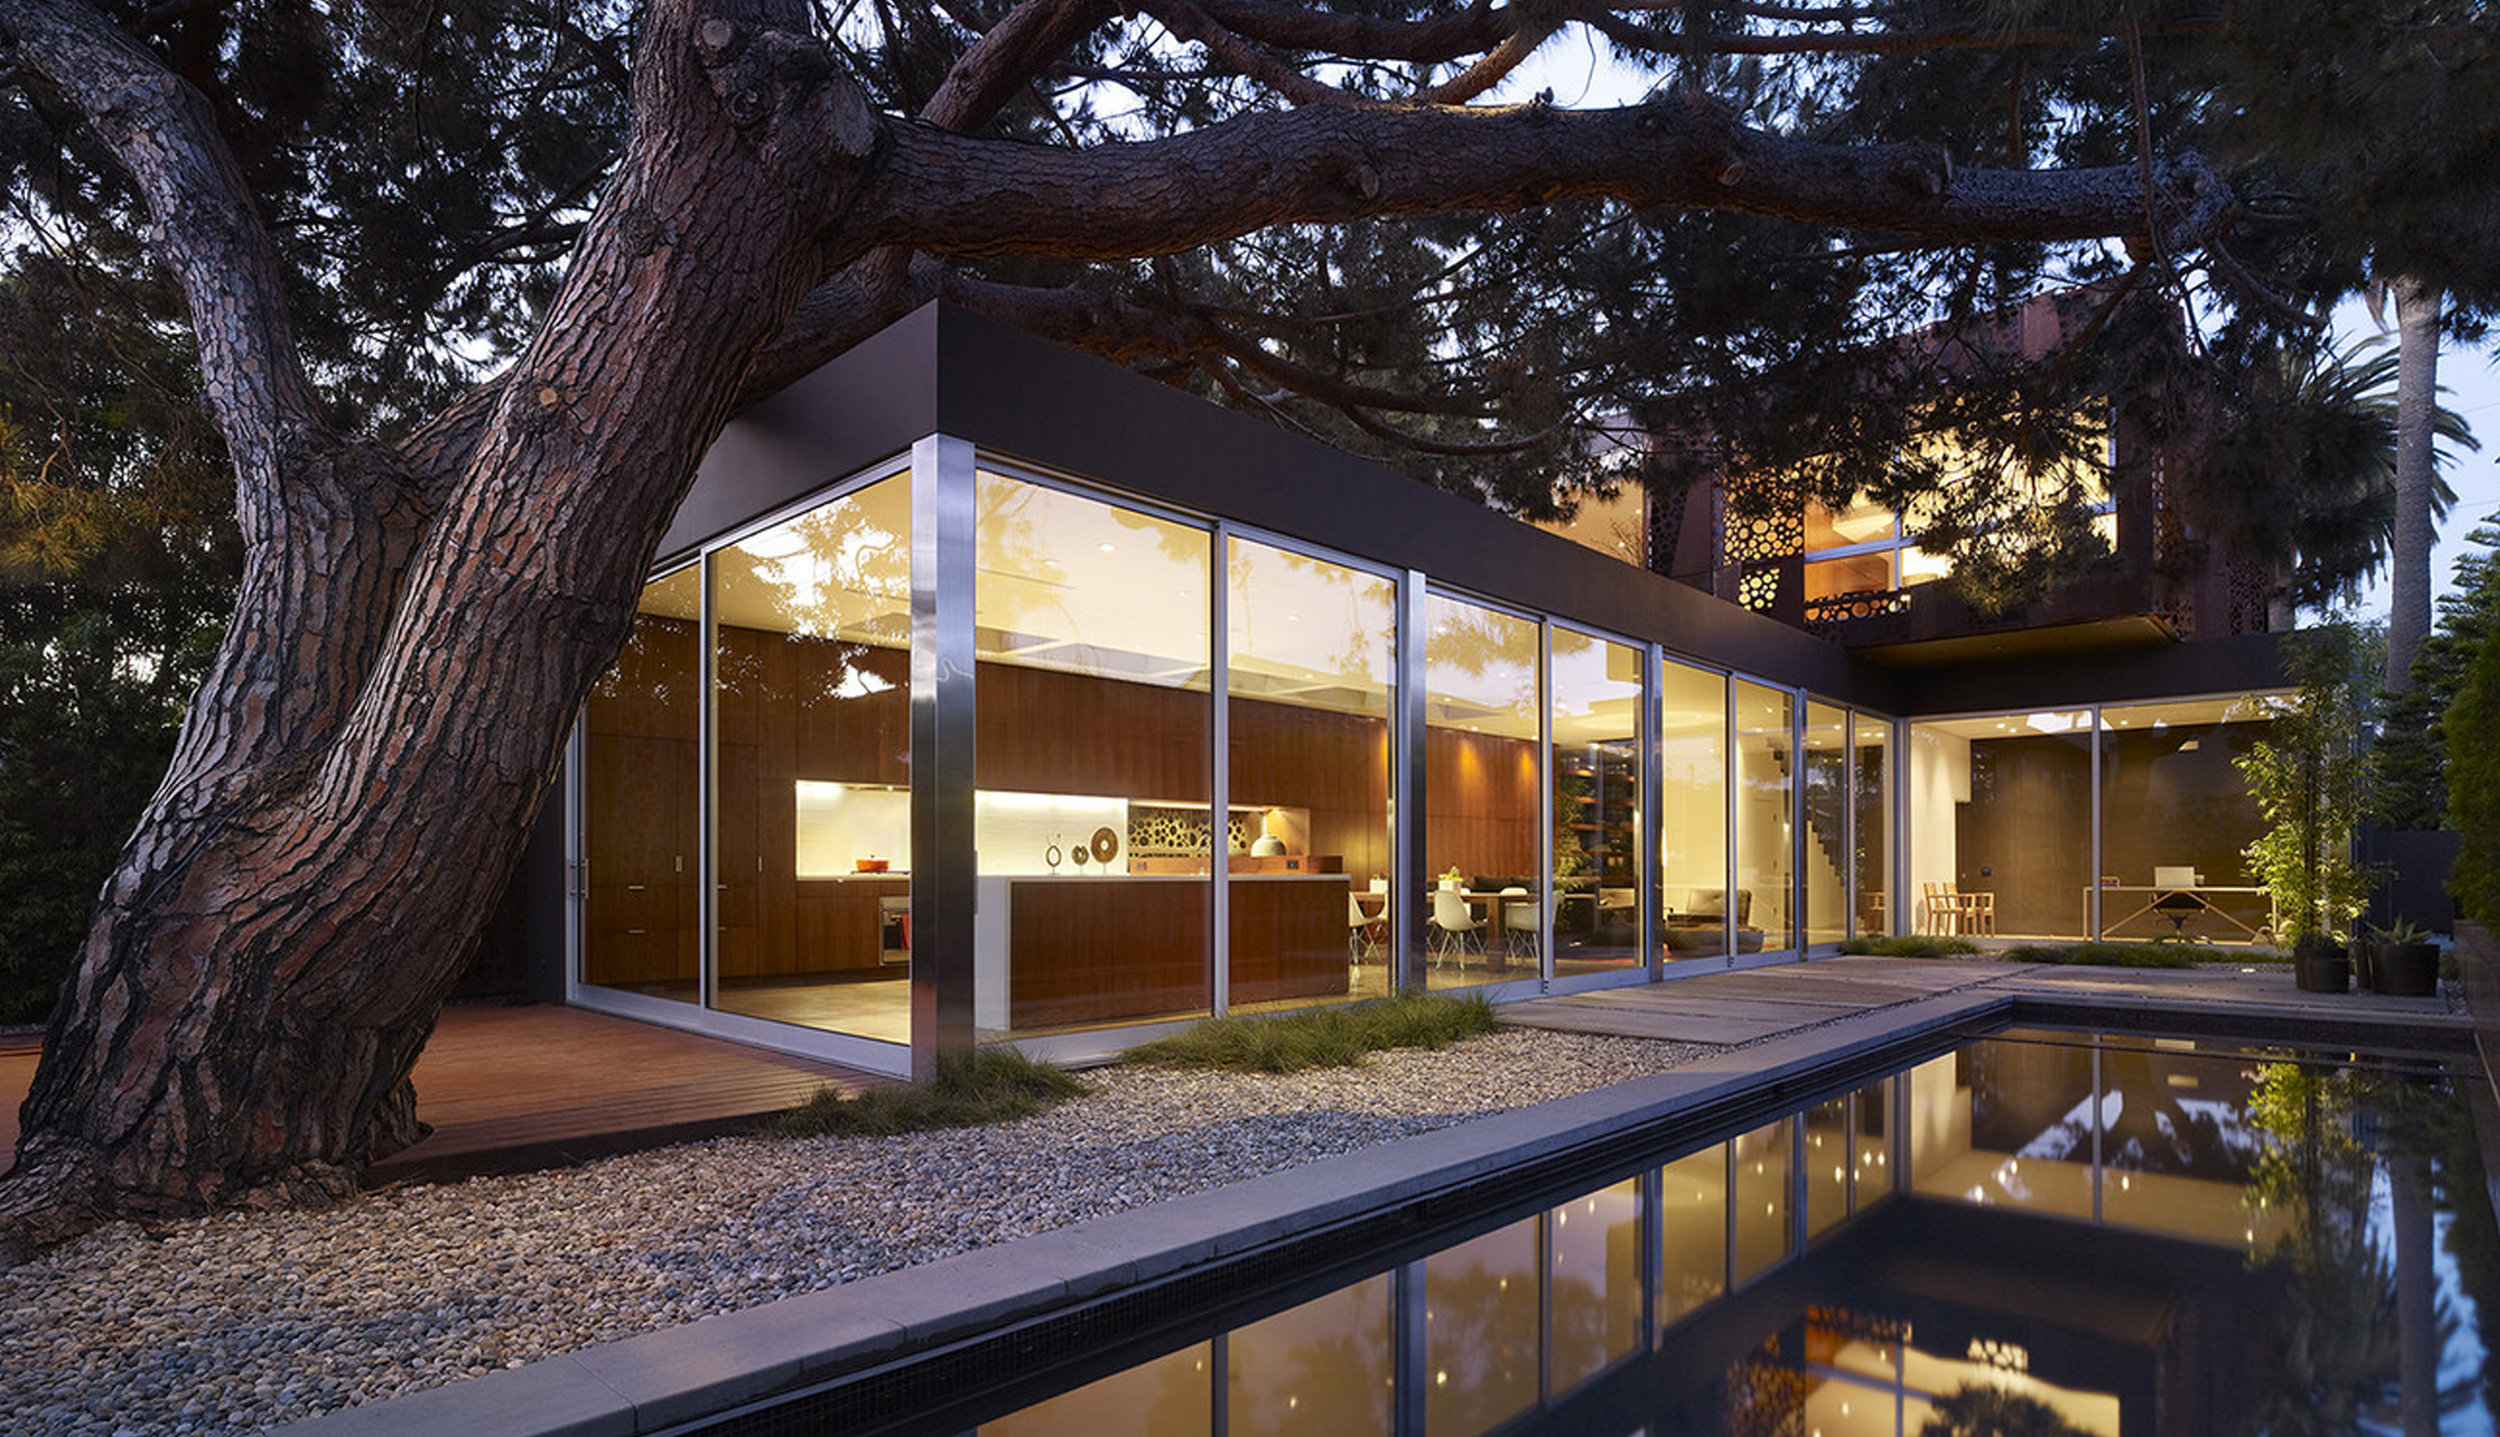 The Walnut House - Modal Design. 2010. Venice, CA.    More photos and an interview with architect Daniel Monti...